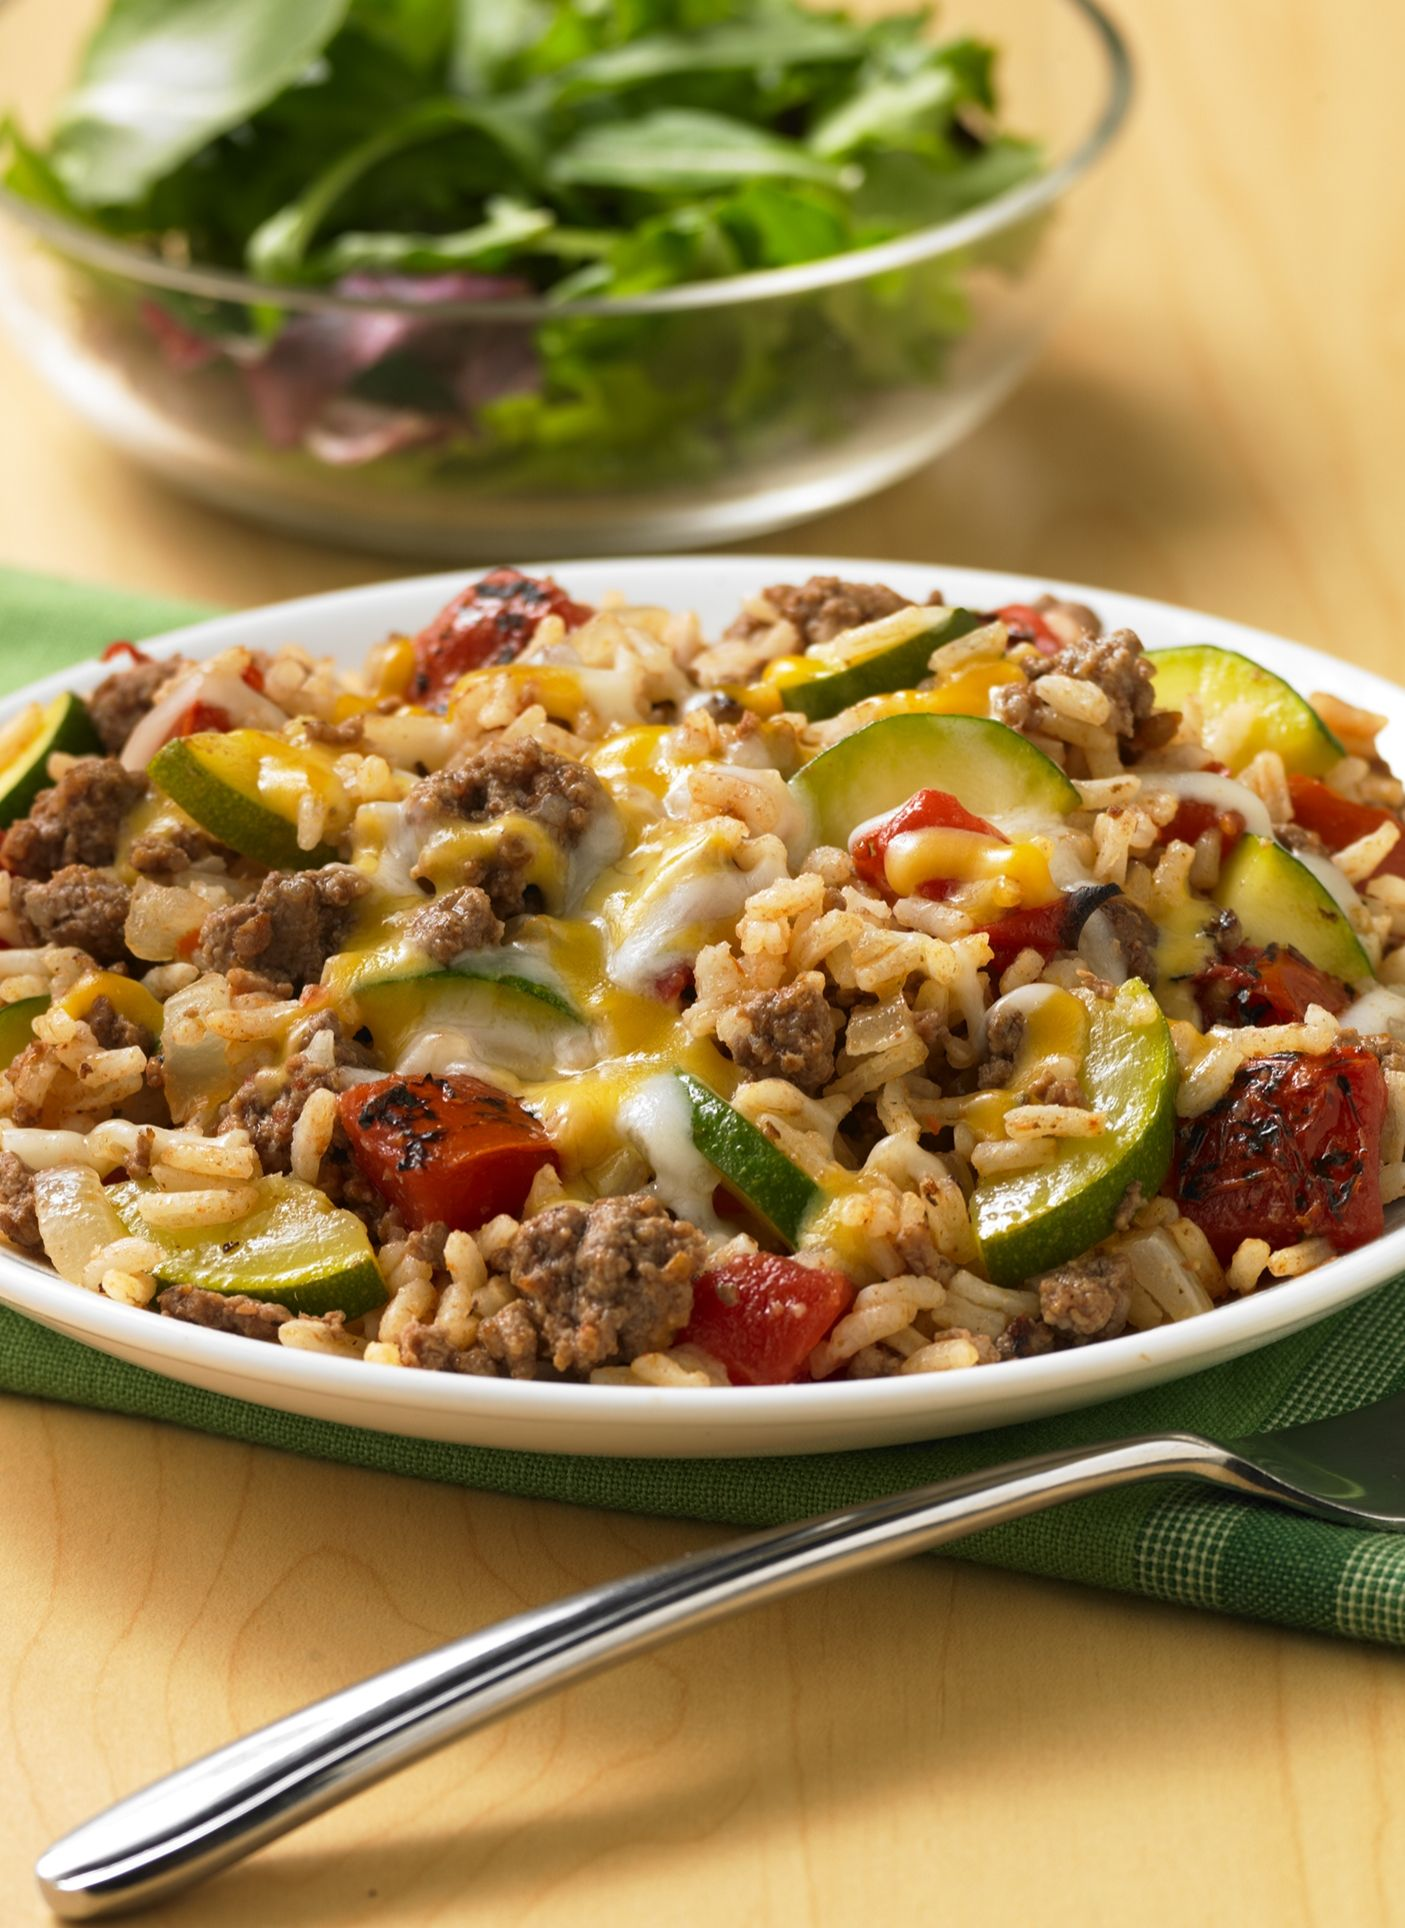 Zucchini Beef Rice Skillet Recipe Recipes Ground Beef Recipes Dinner Recipes